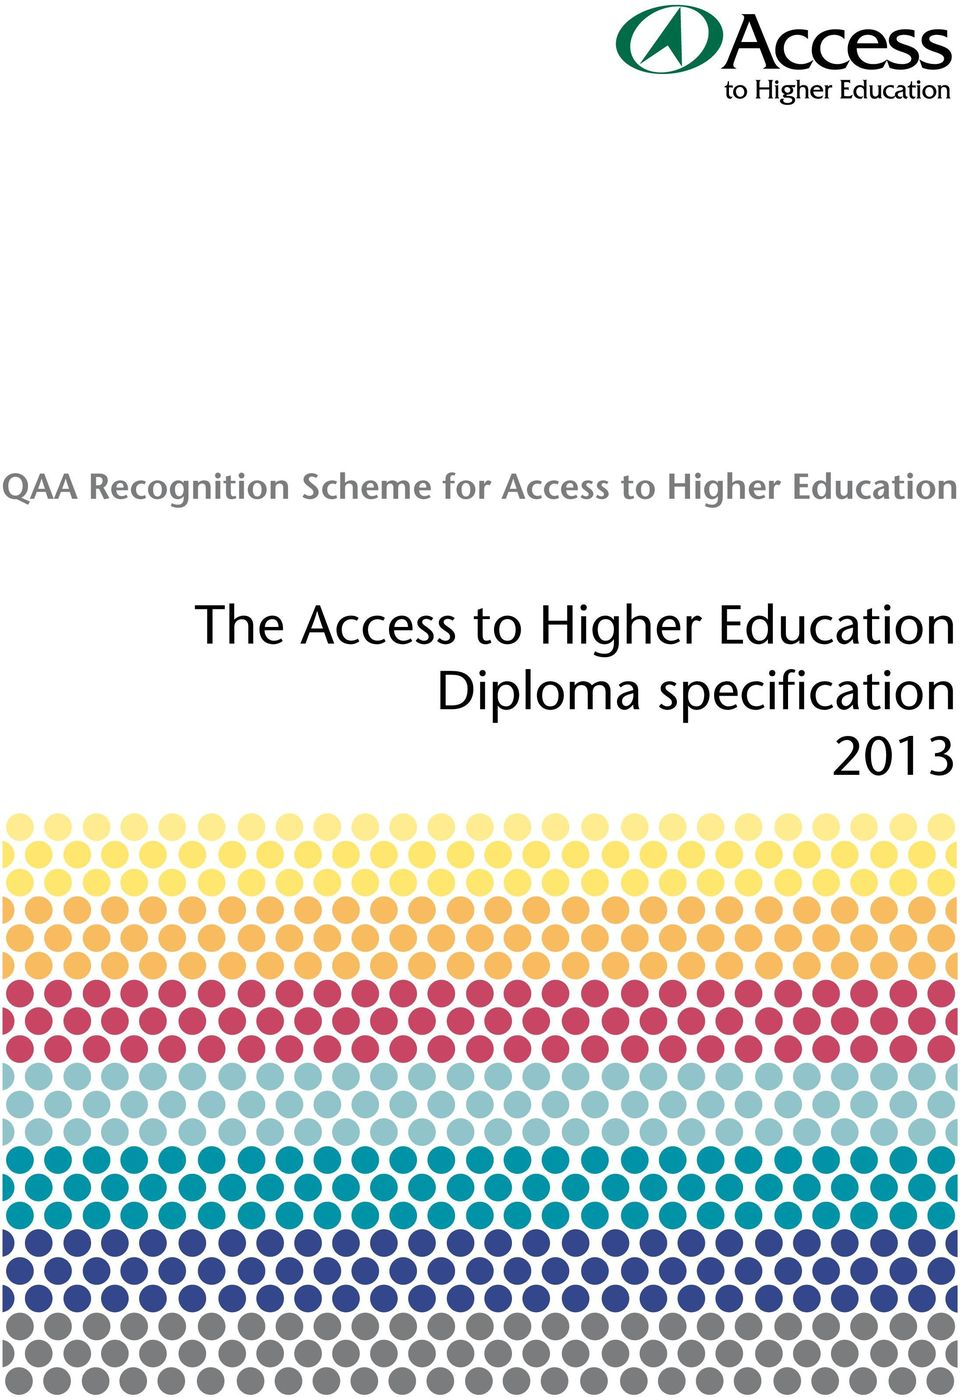 The  Diploma specification